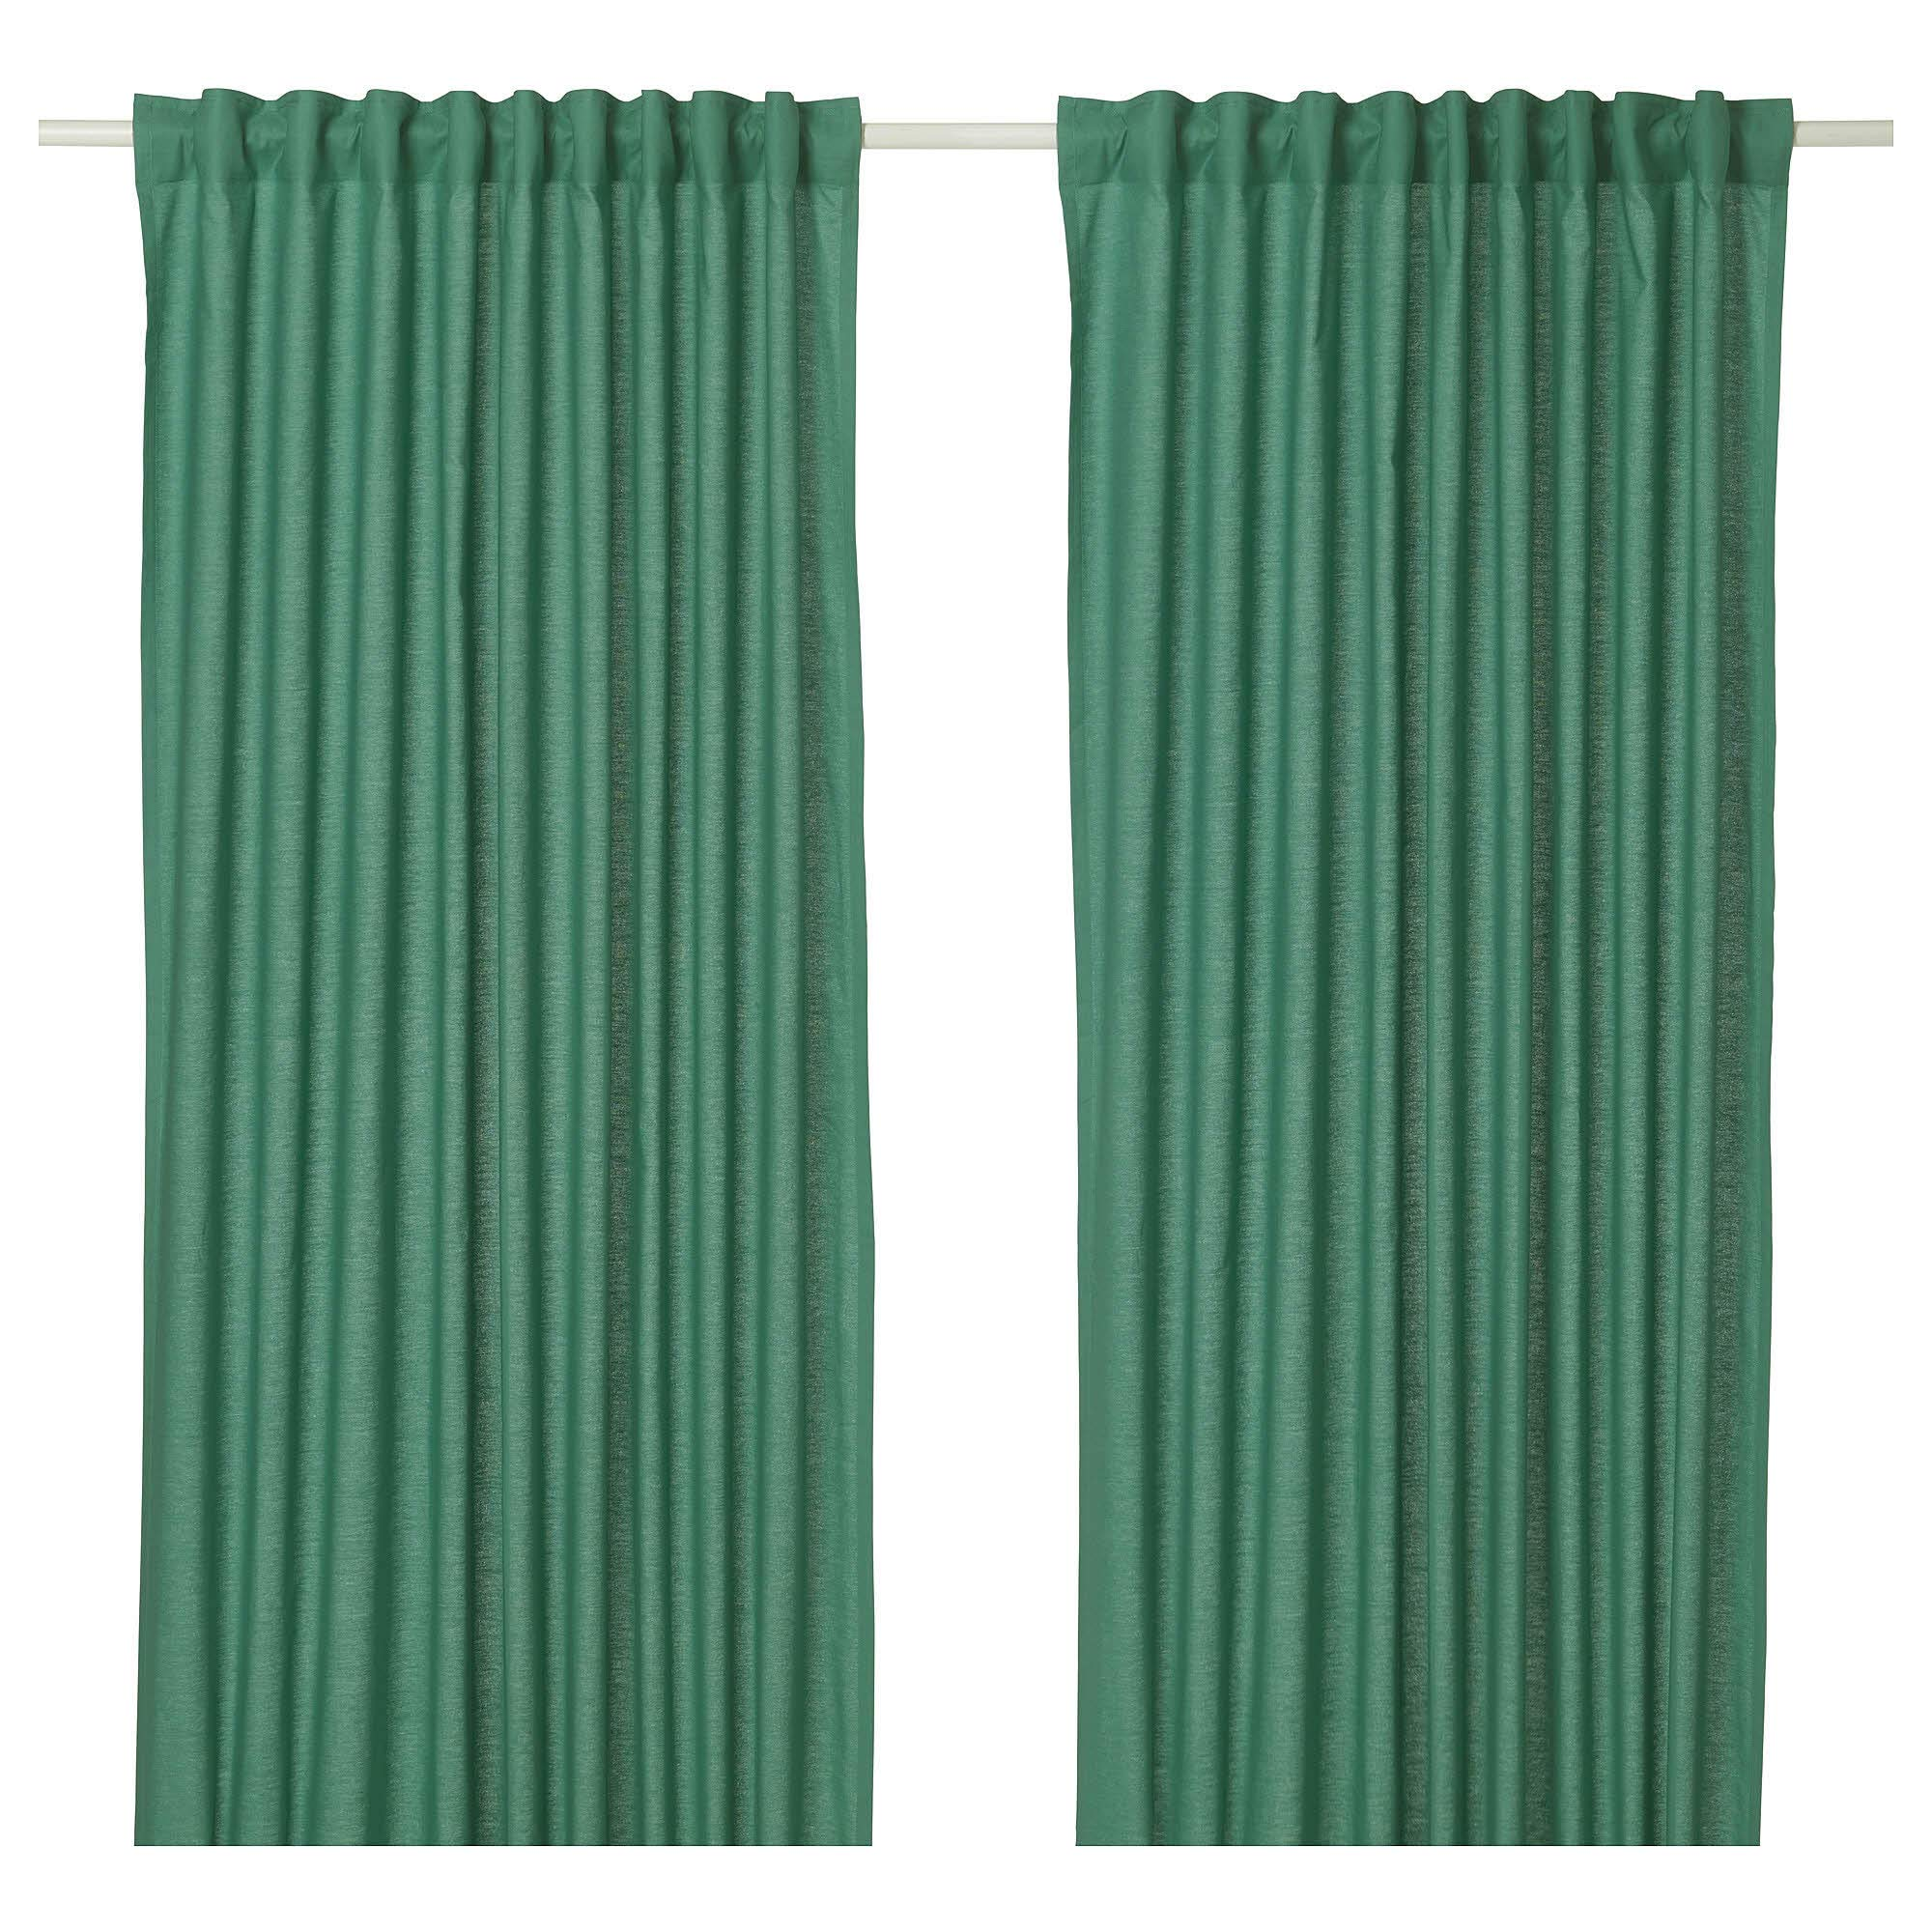 IKEA ASIA ANNALOUISA - Cortinas (1 par), Color Verde: Amazon.es: Hogar